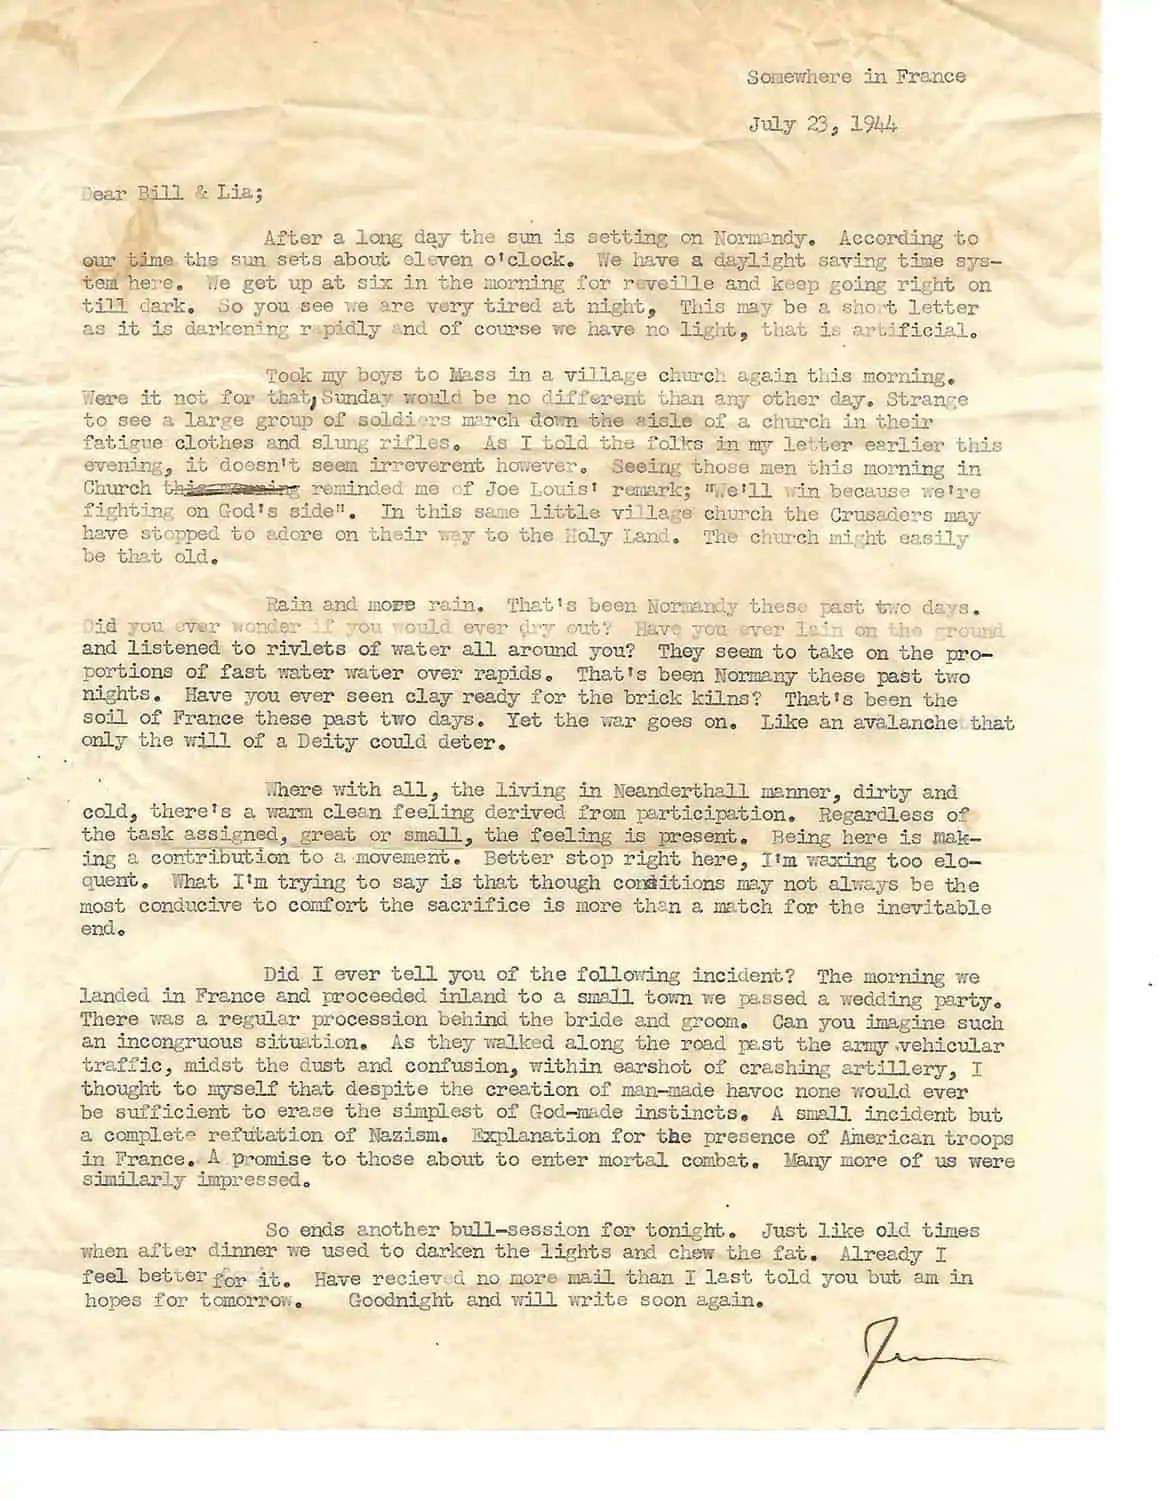 My Father's Letter After D-Day from Normandy